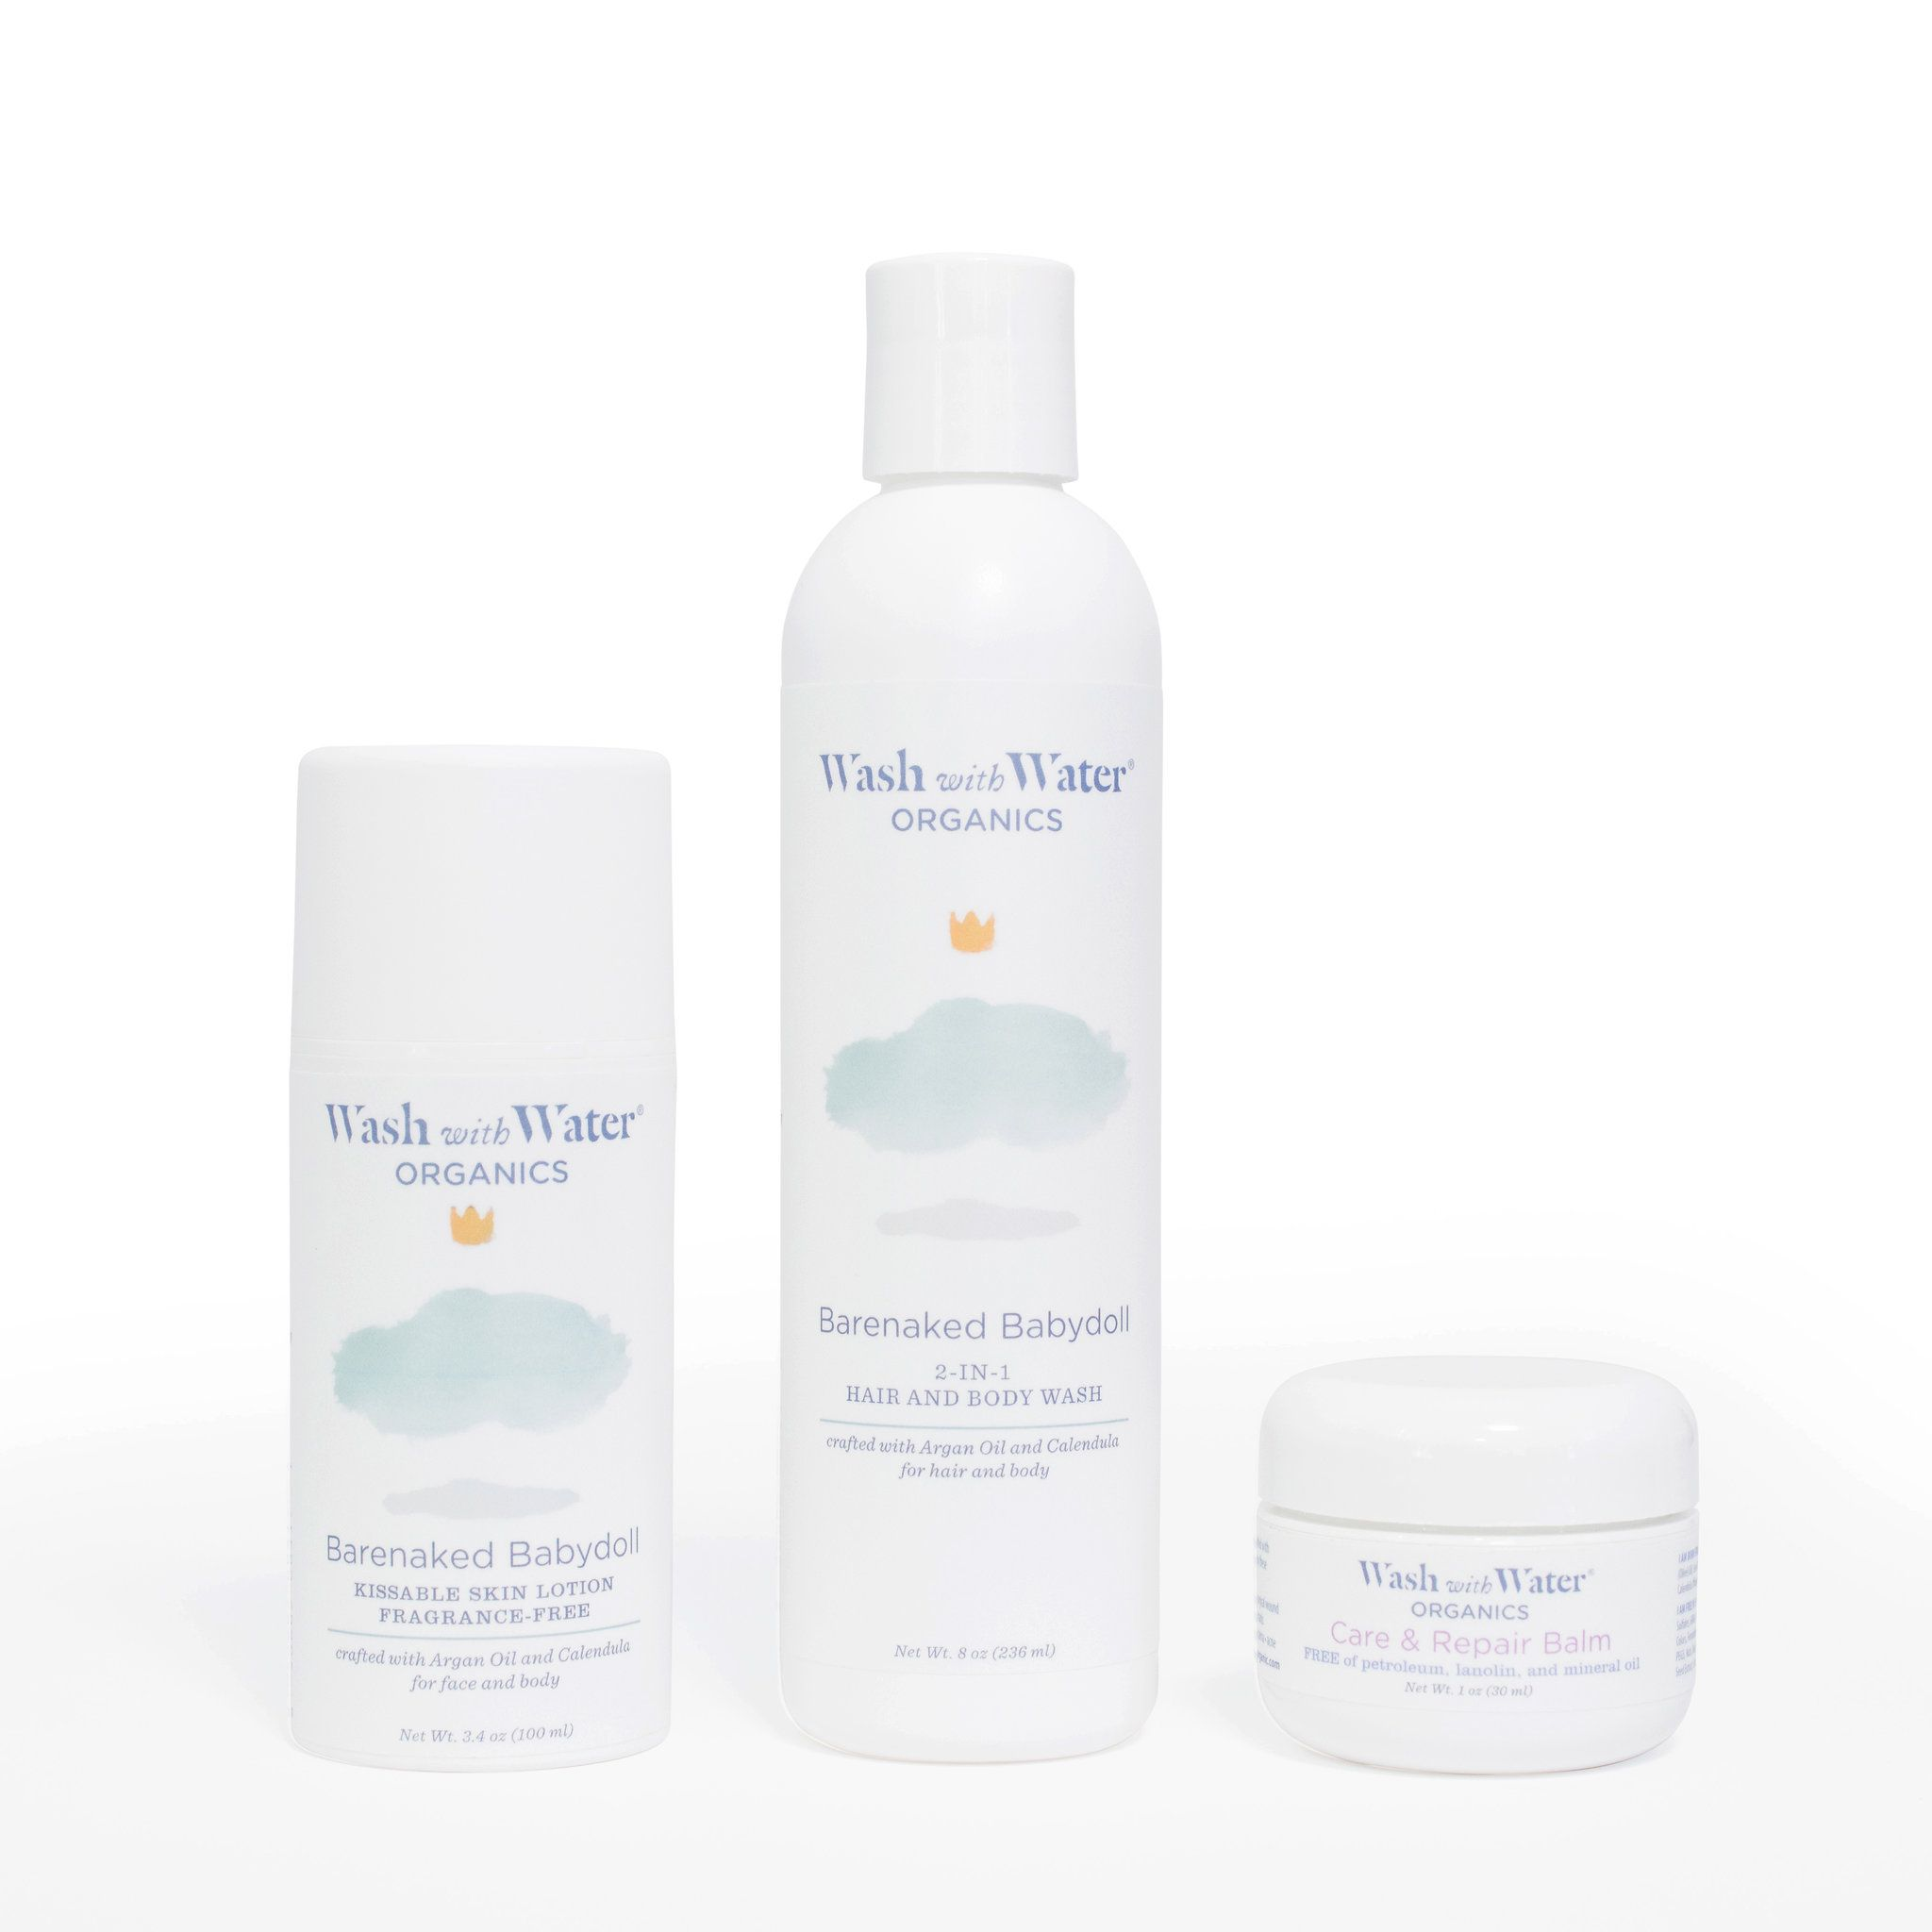 It S Finally Here Our Newest Baby Eczema Bundle Gentle And Organic Alternatives To Help Prevent And Soo Baby Eczema Cream Baby Eczema Organic Baby Skincare